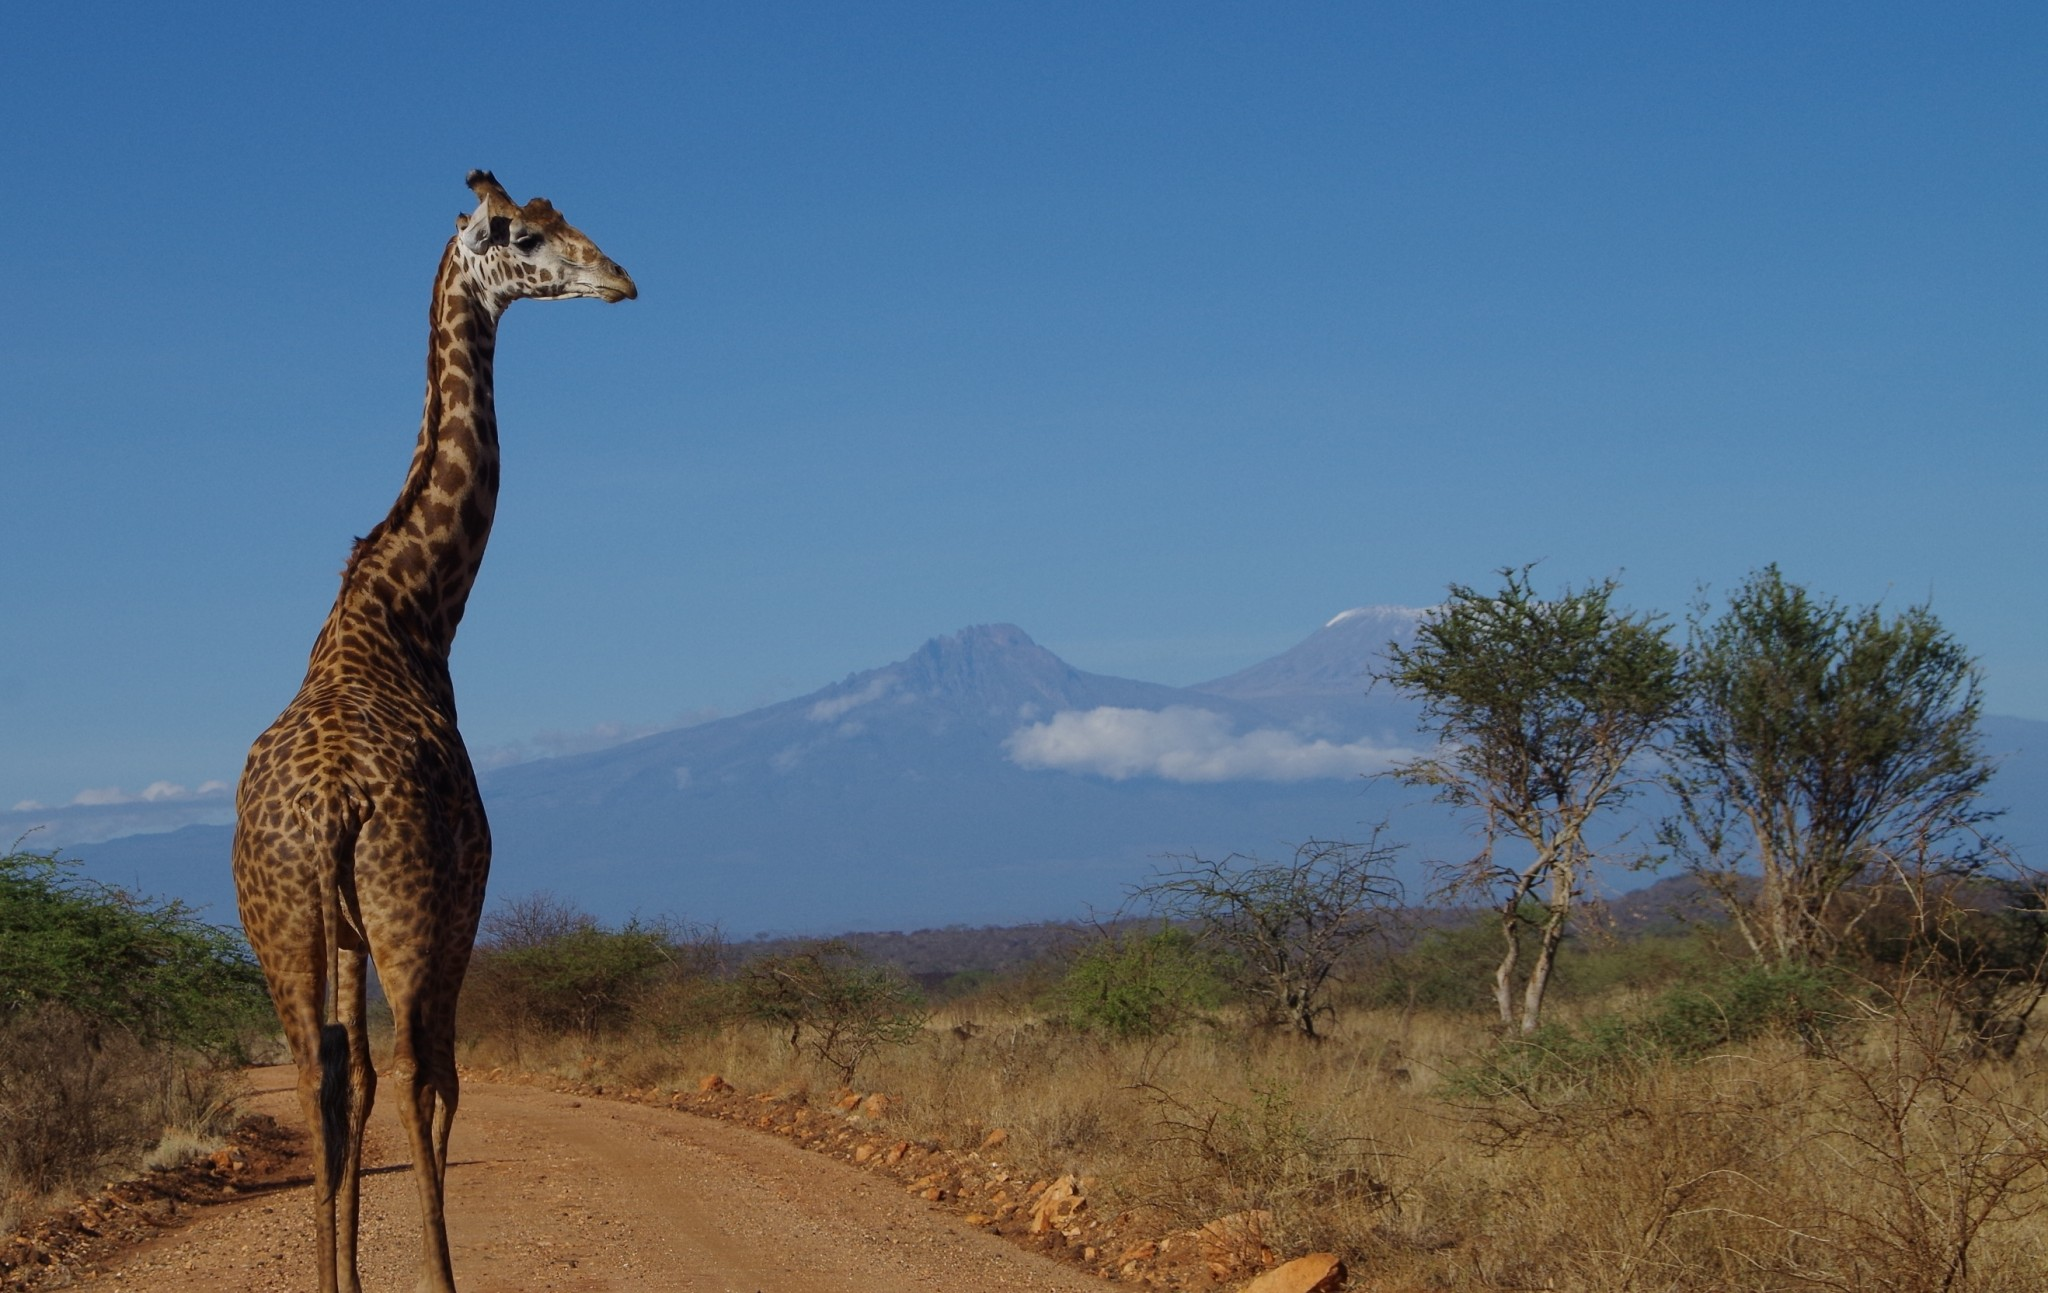 Safari Welcome to Kilimanjaro im Tsavo und Amboseli Nationalpark